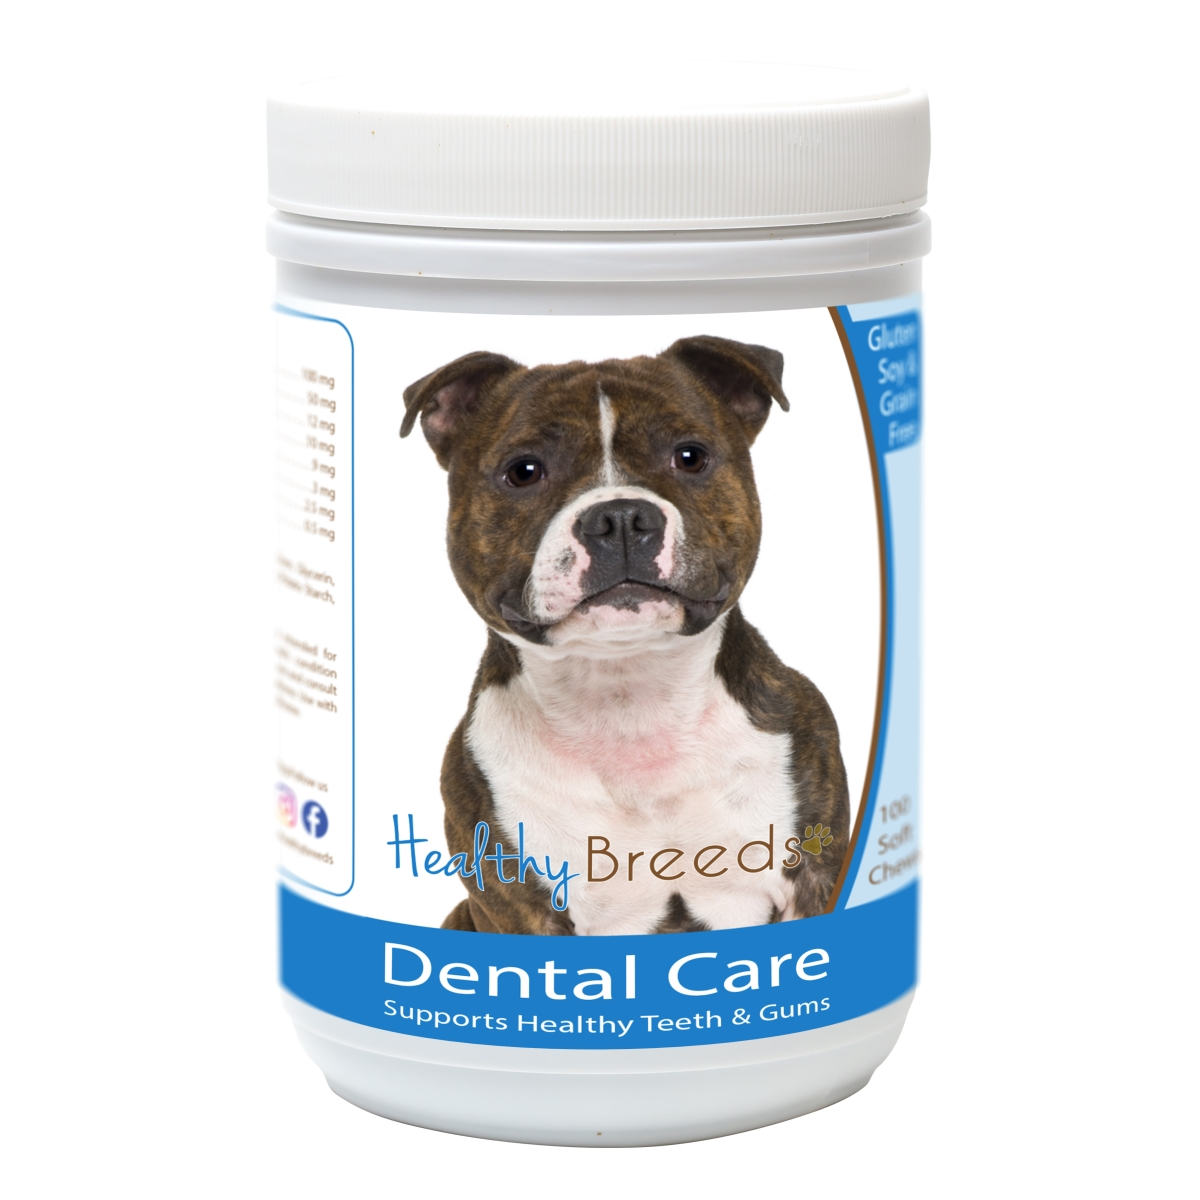 Healthy Breeds 840235162964 Staffordshire Bull Terrier Breath Care Soft Chews for Dogs - 60 Count